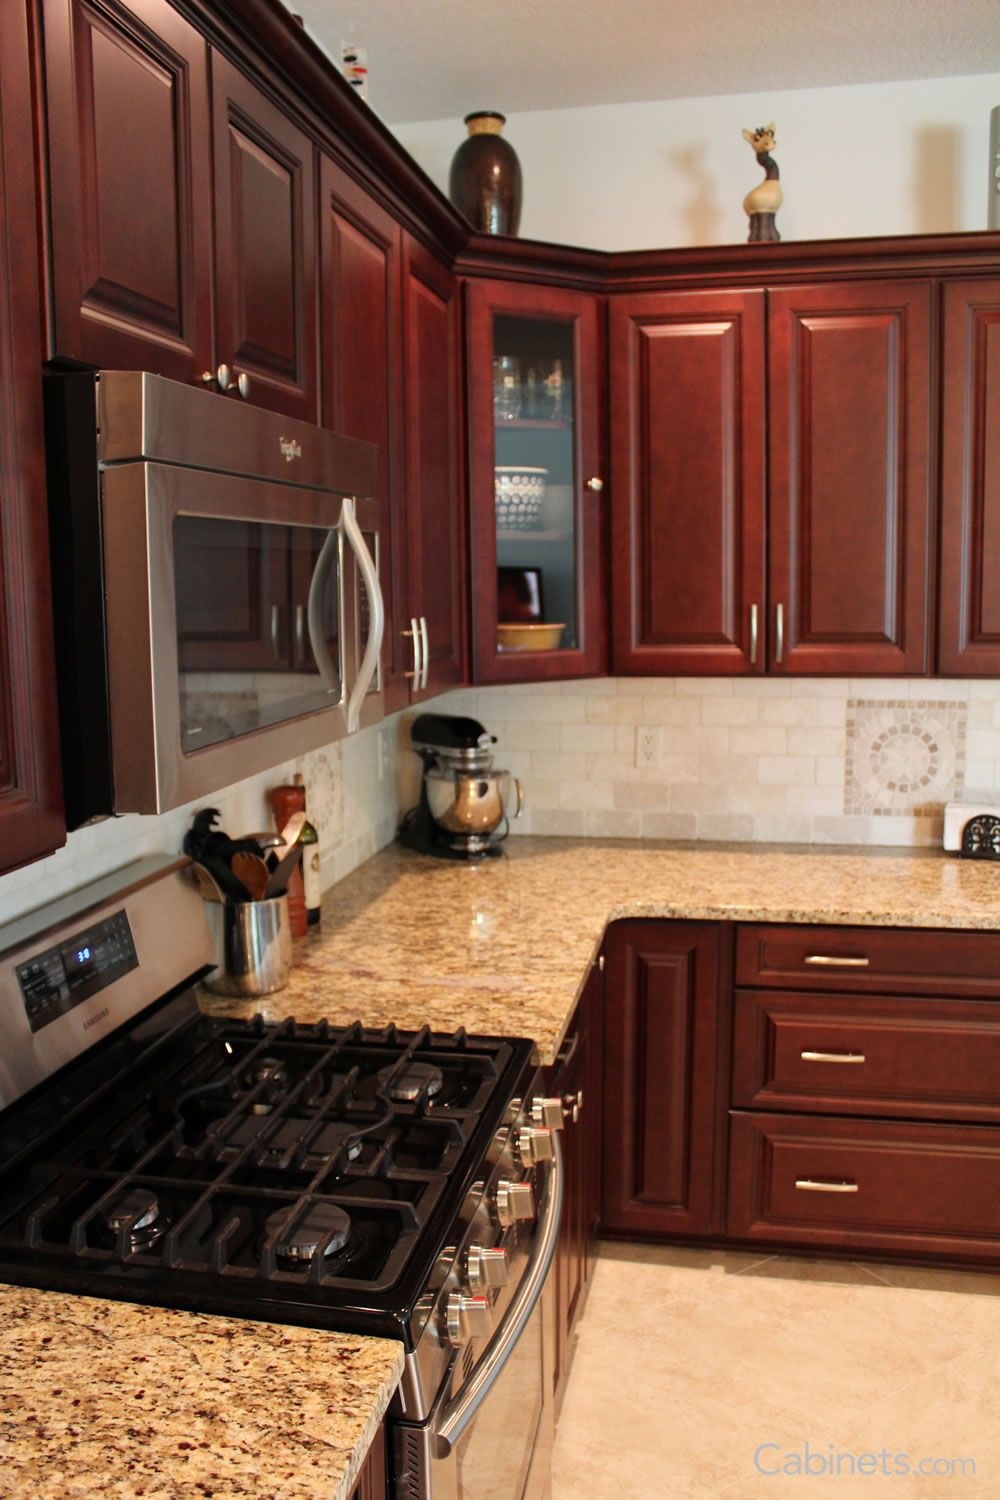 Http Www Cabinets Com Gallery Cherry Cabinets Kitchen Kitchen Cabinets Kitchen